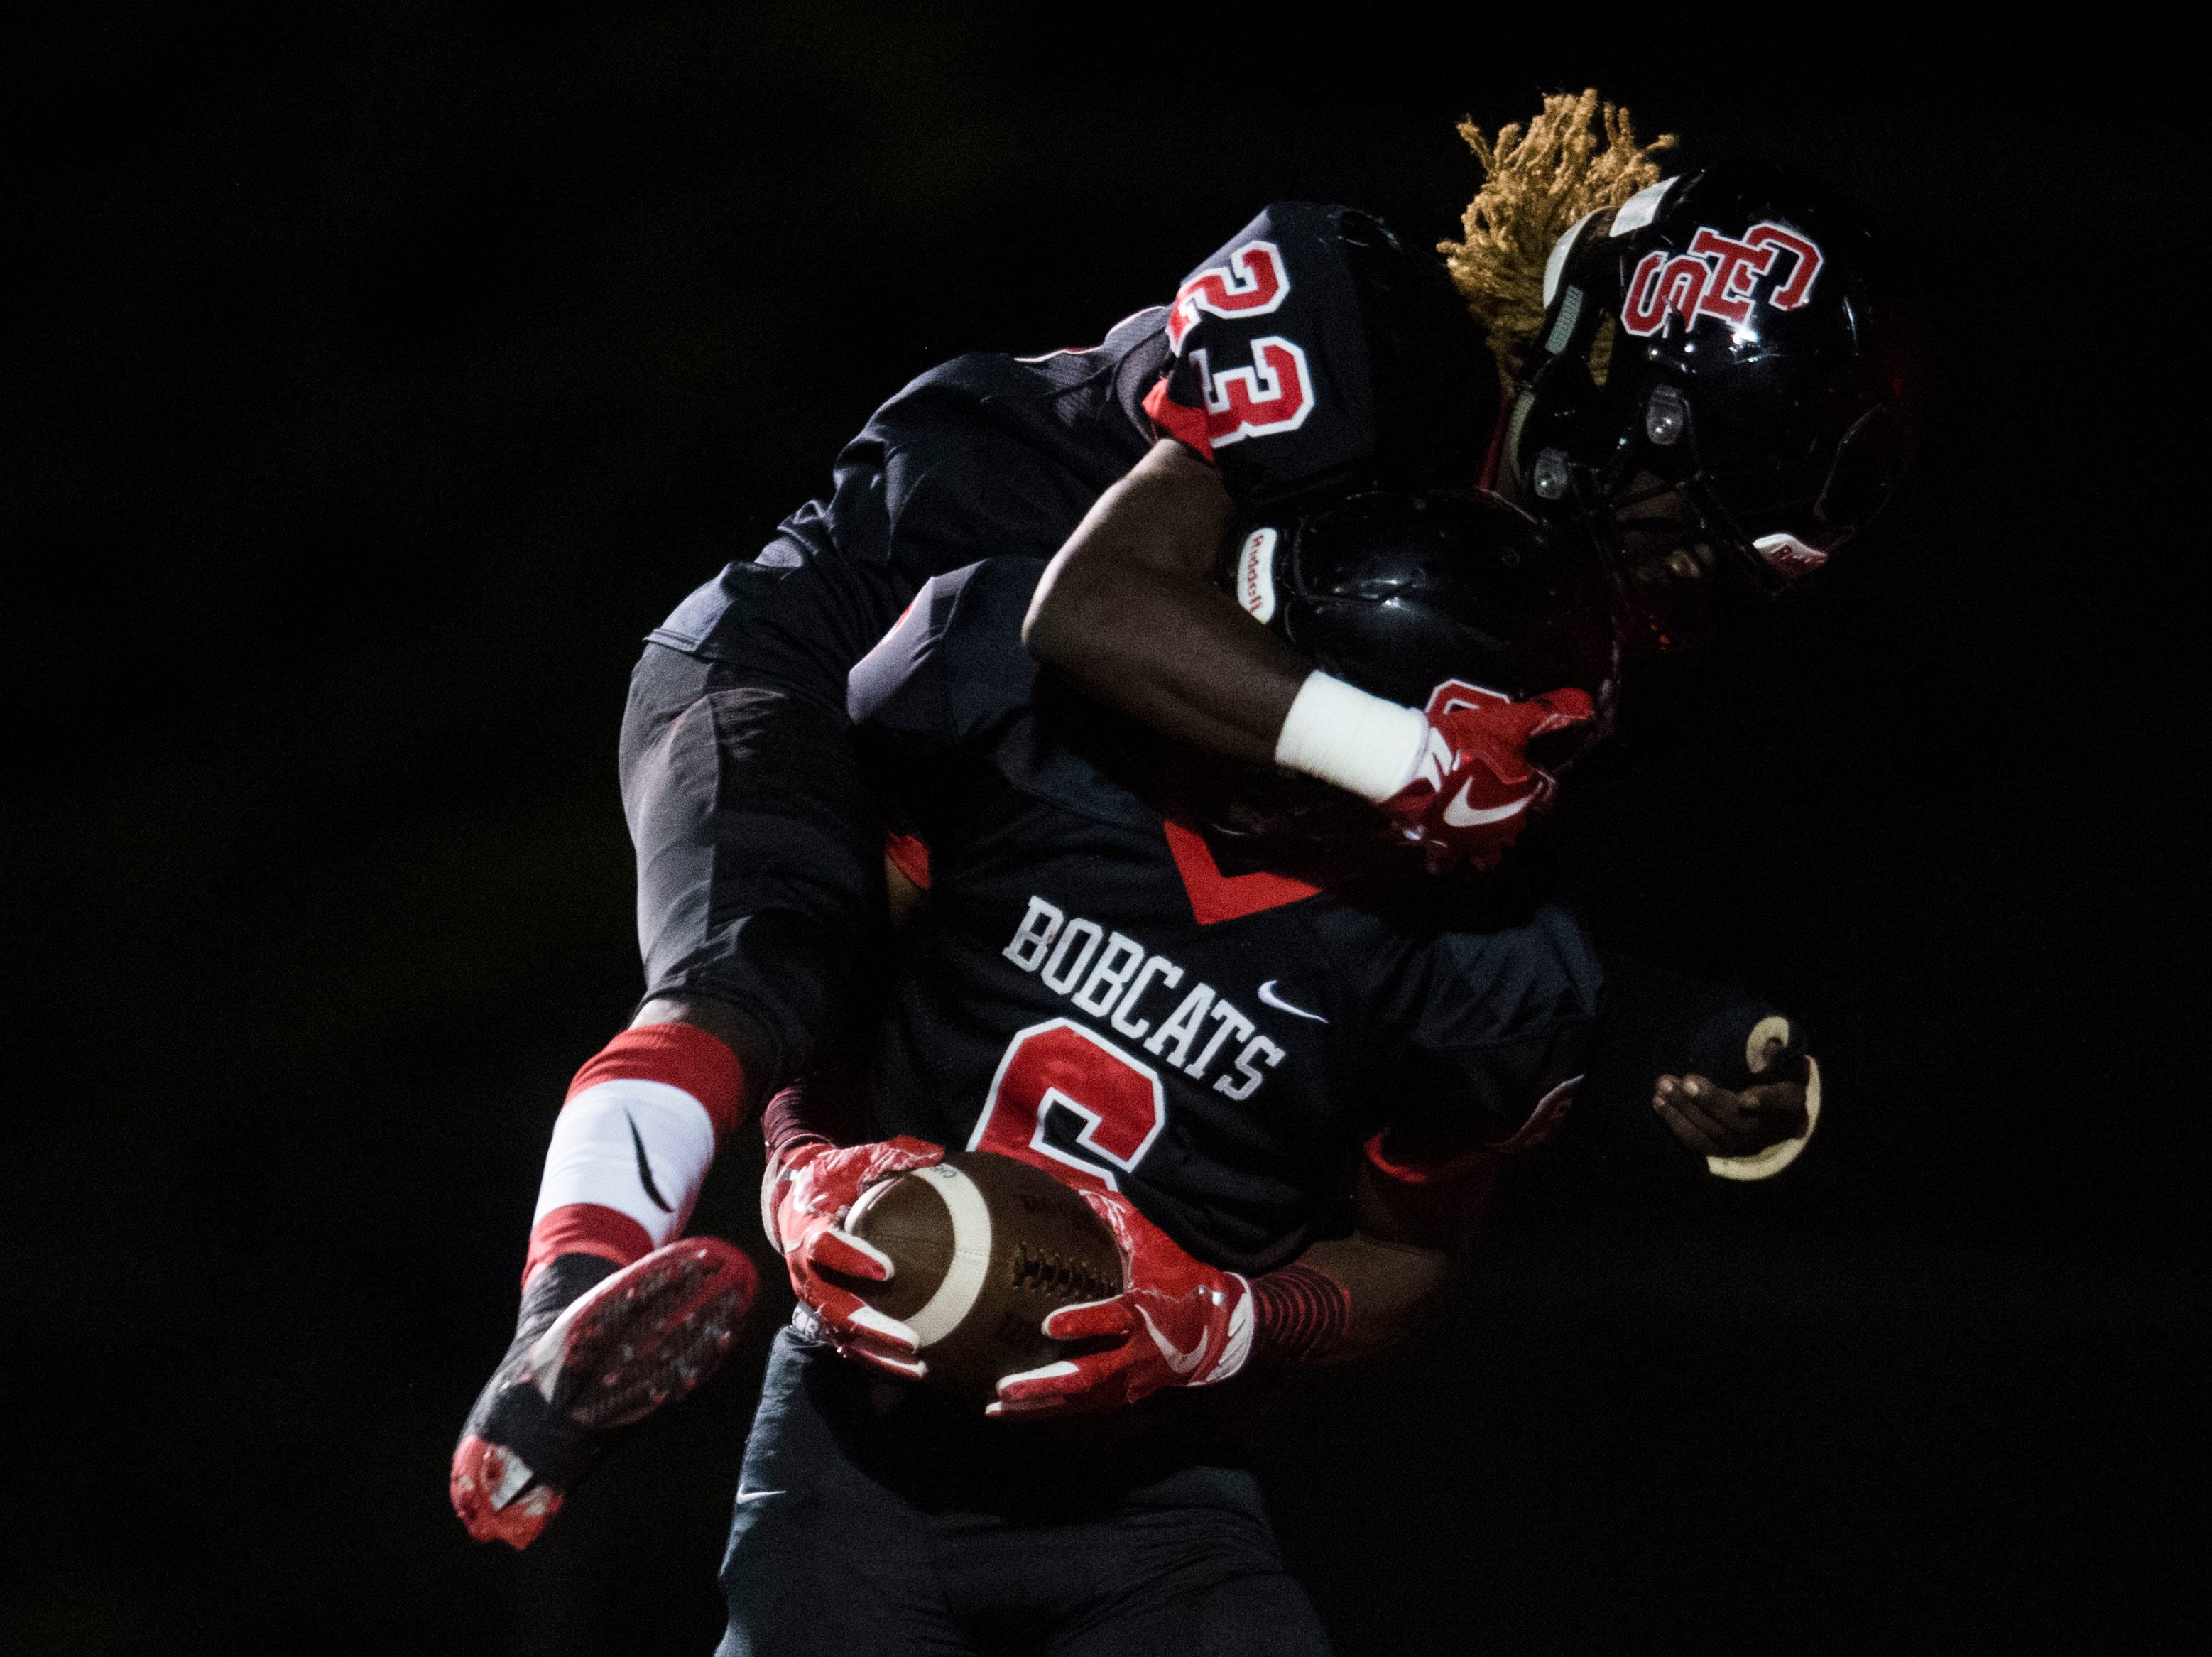 Central's Trey'sean Moore (23) celebrates Demetrien Johnson's (6) touchdown, before it was called back, during a high school football game between Central and Halls at Central Friday, Sept. 28, 2018. Central won 49-17.